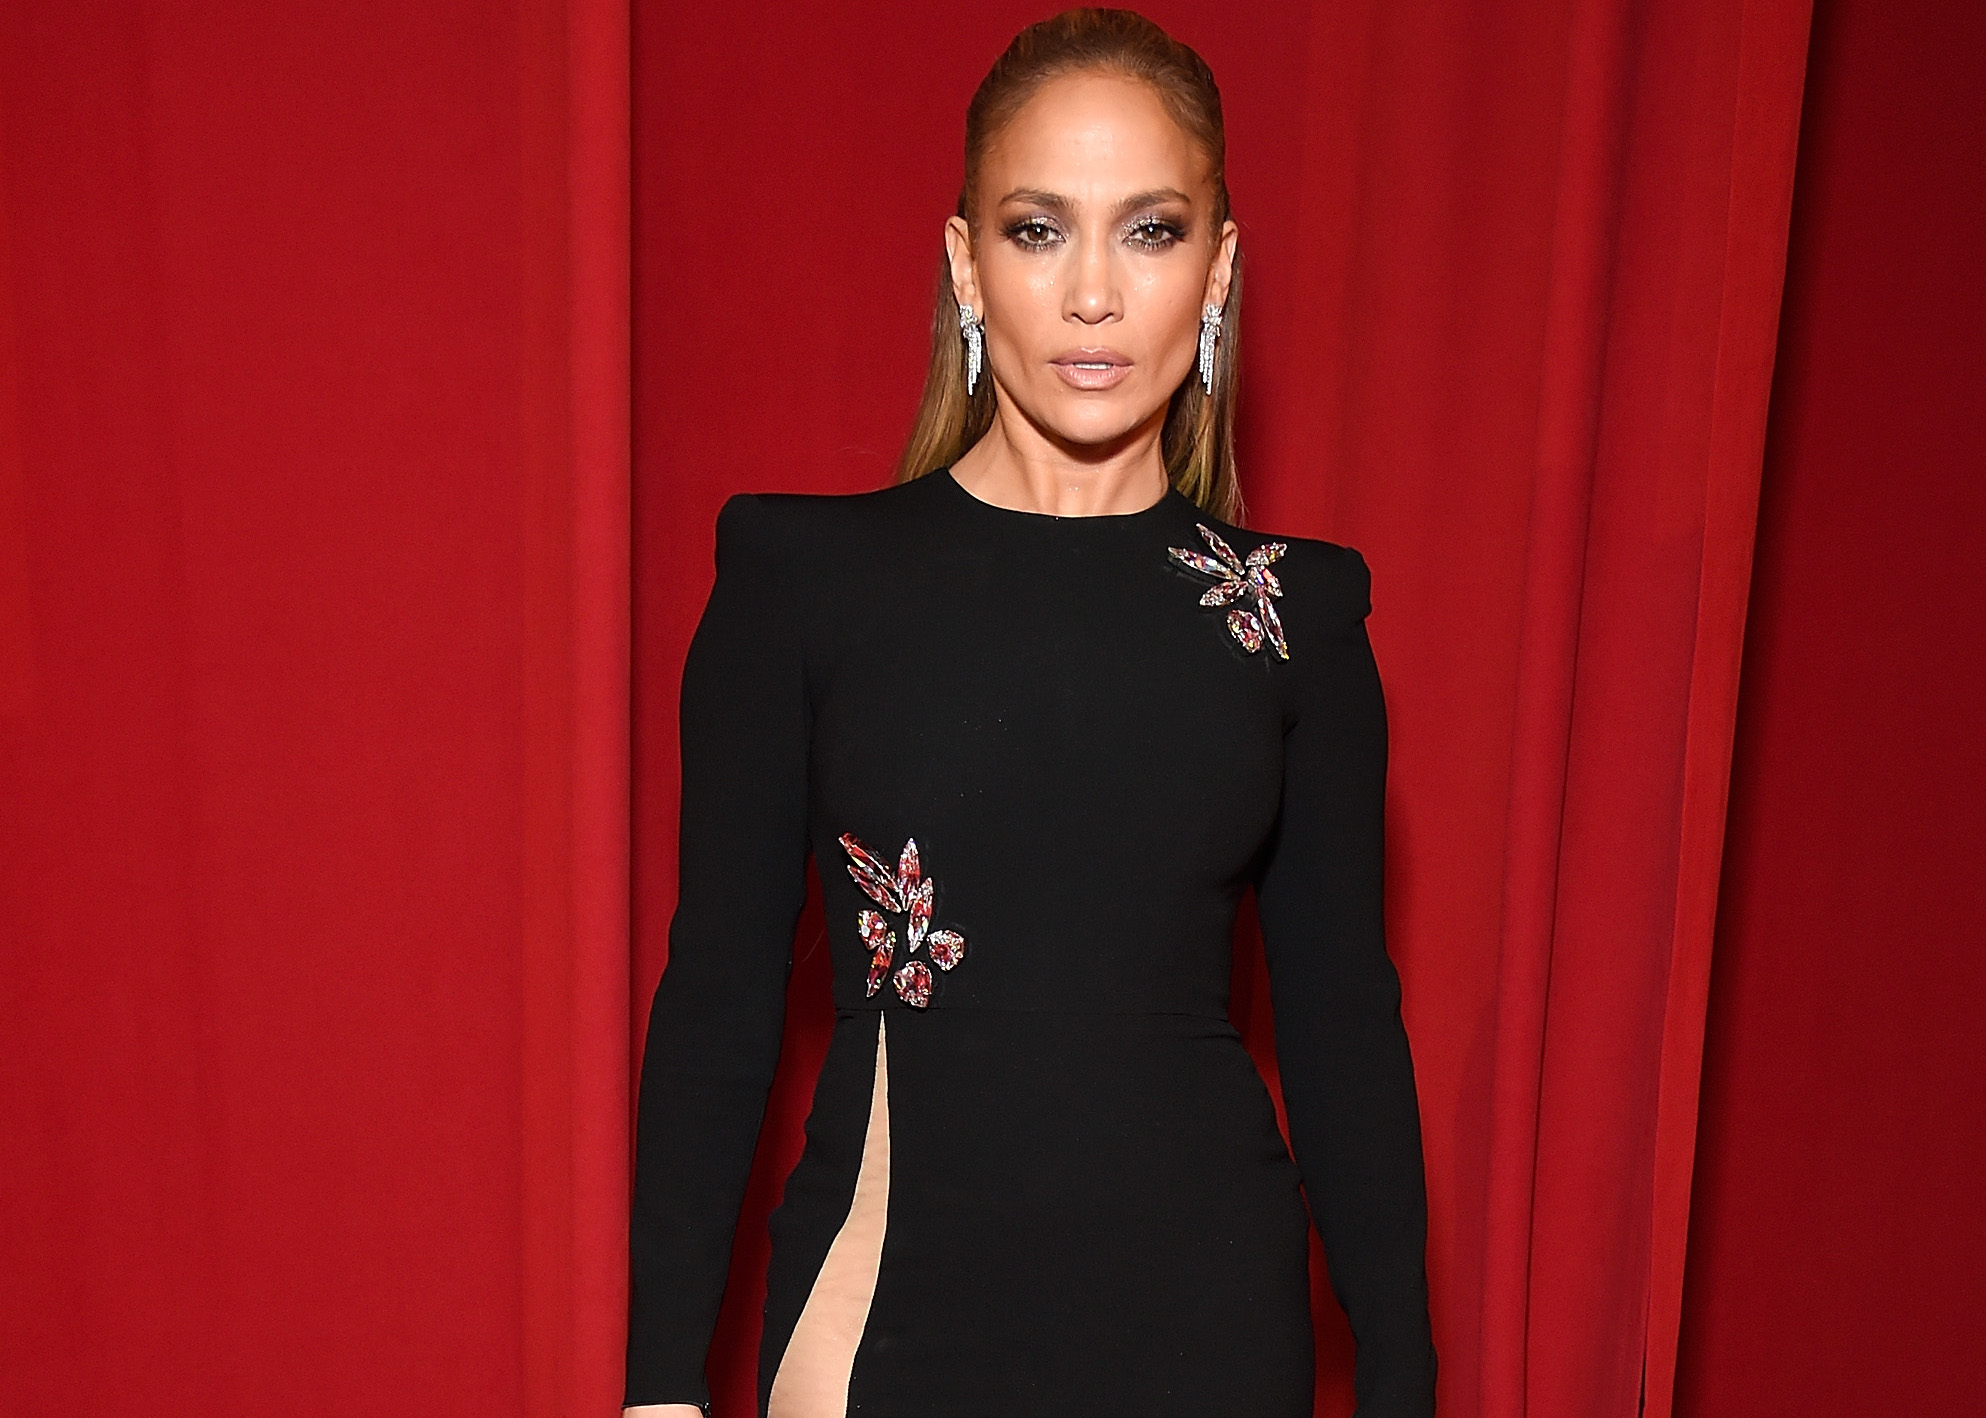 Jennifer Lopez Wore a Dress With The Highest Slit Seen on The red Carpet